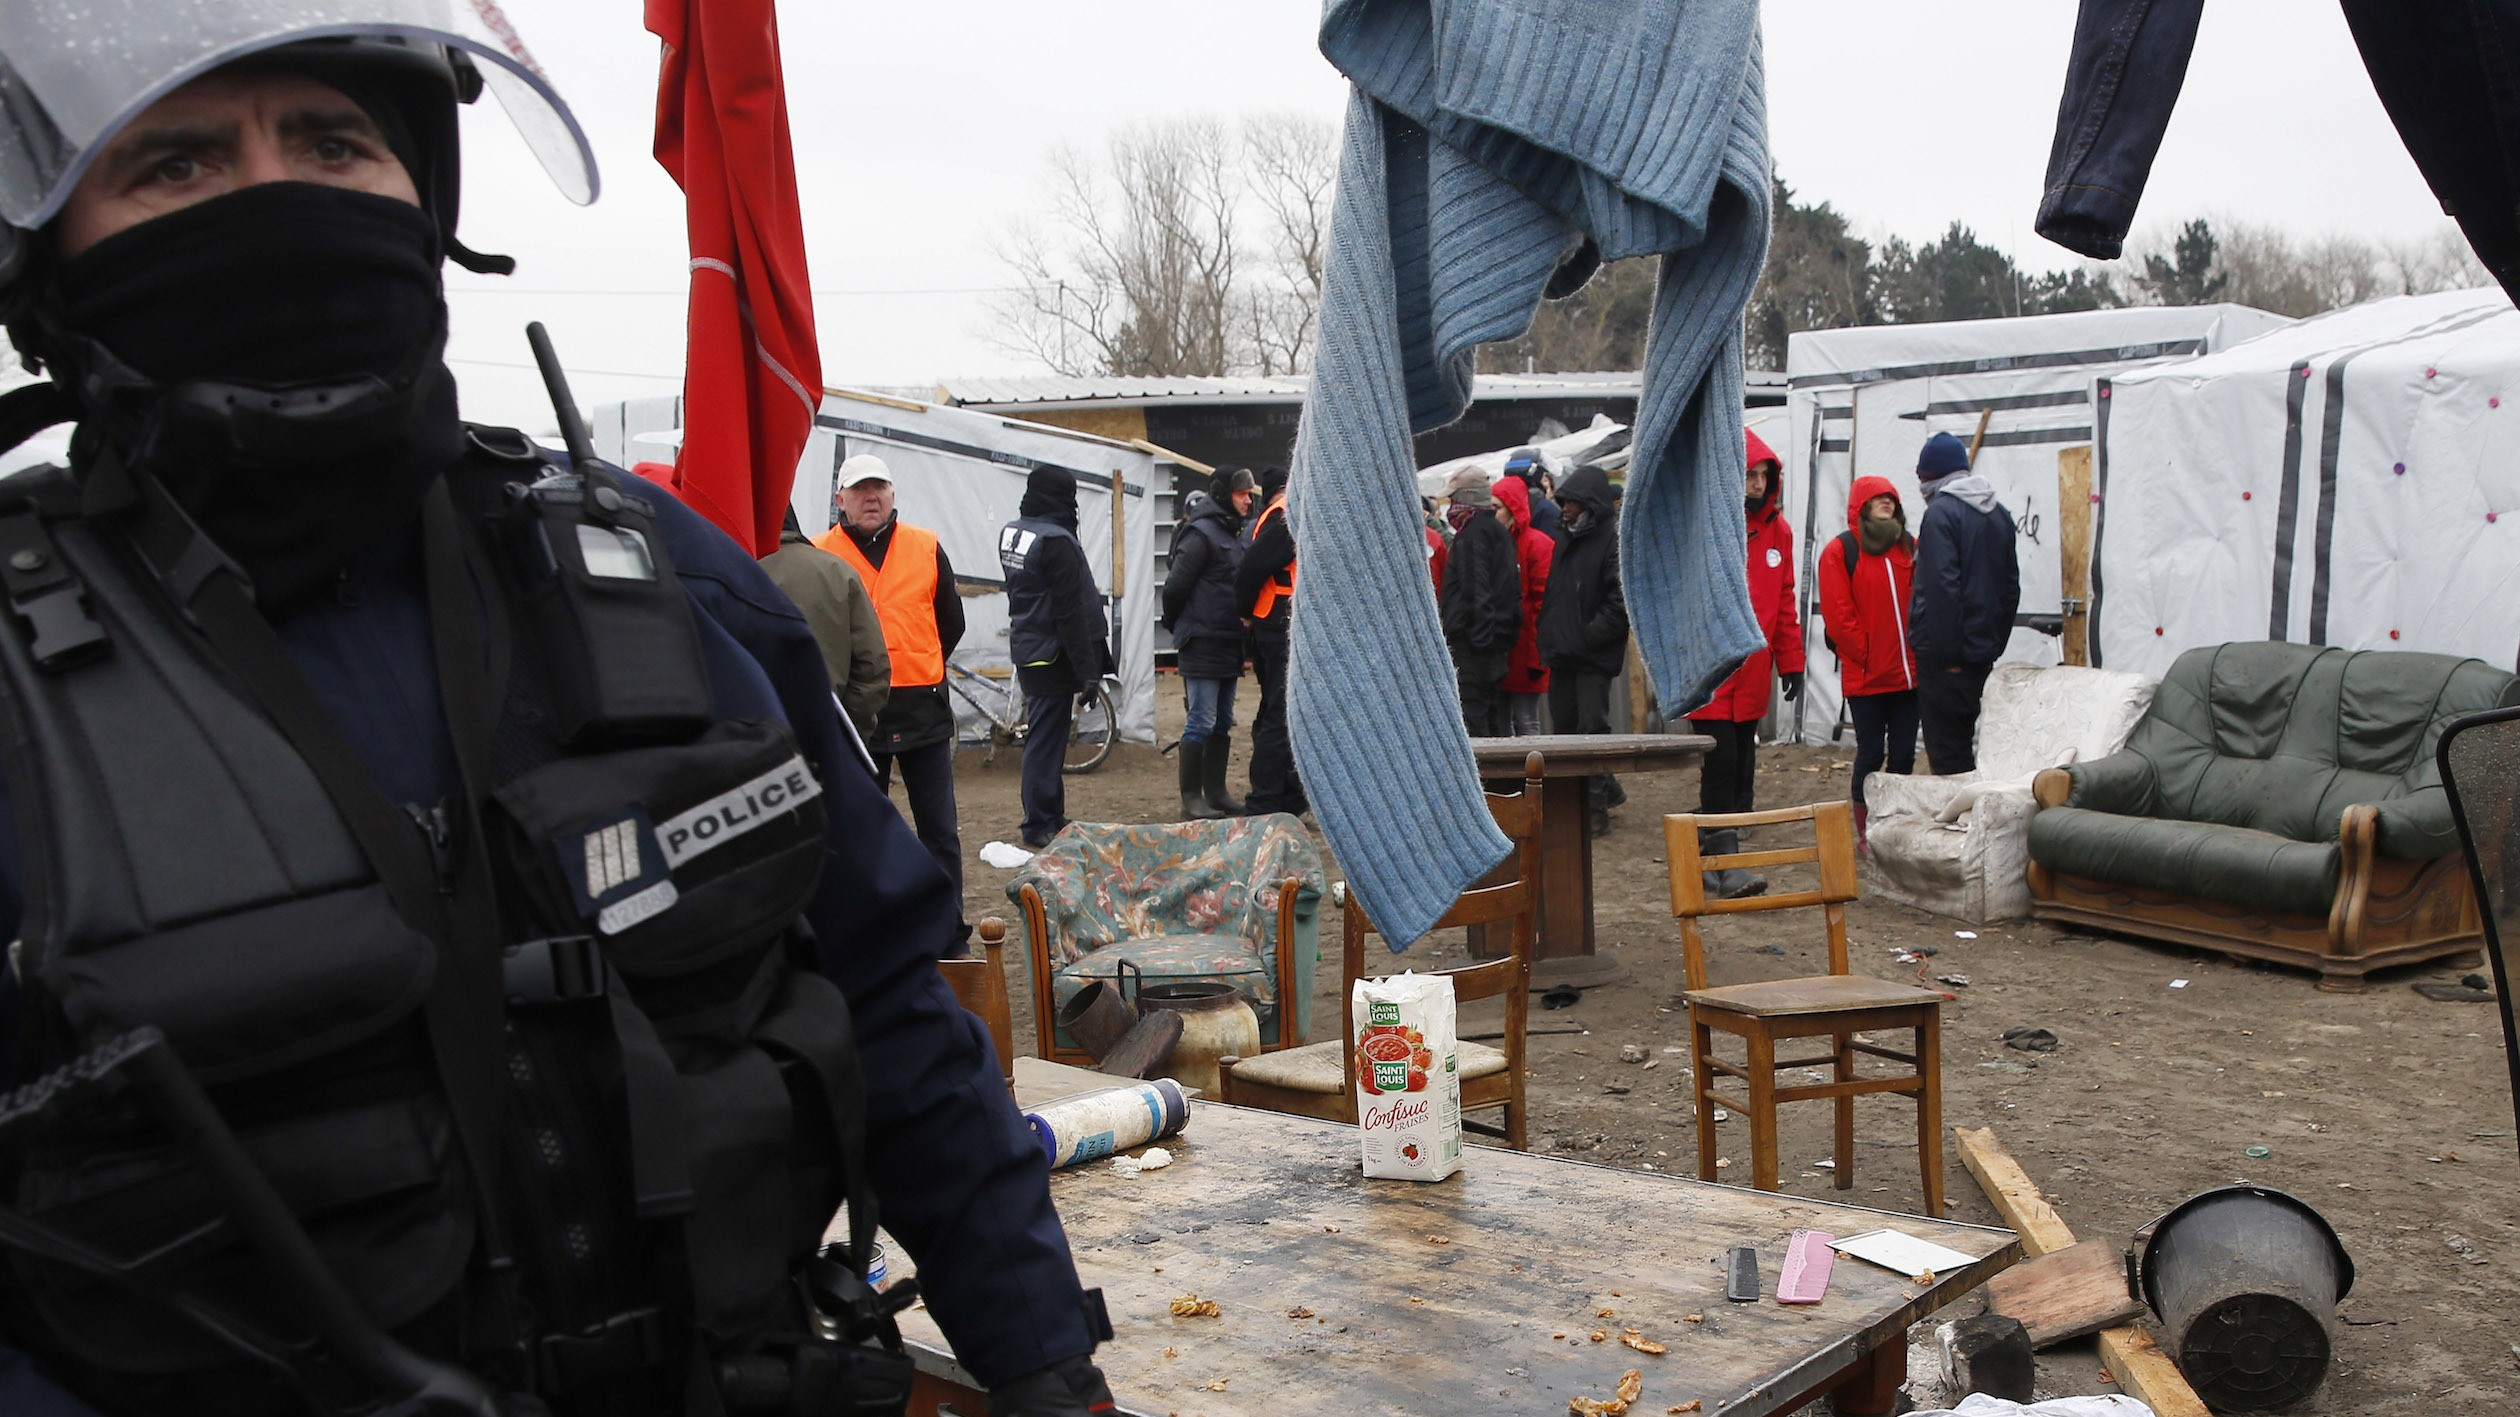 France will tear down the Calais 'Jungle' refugee camp that houses 7,000